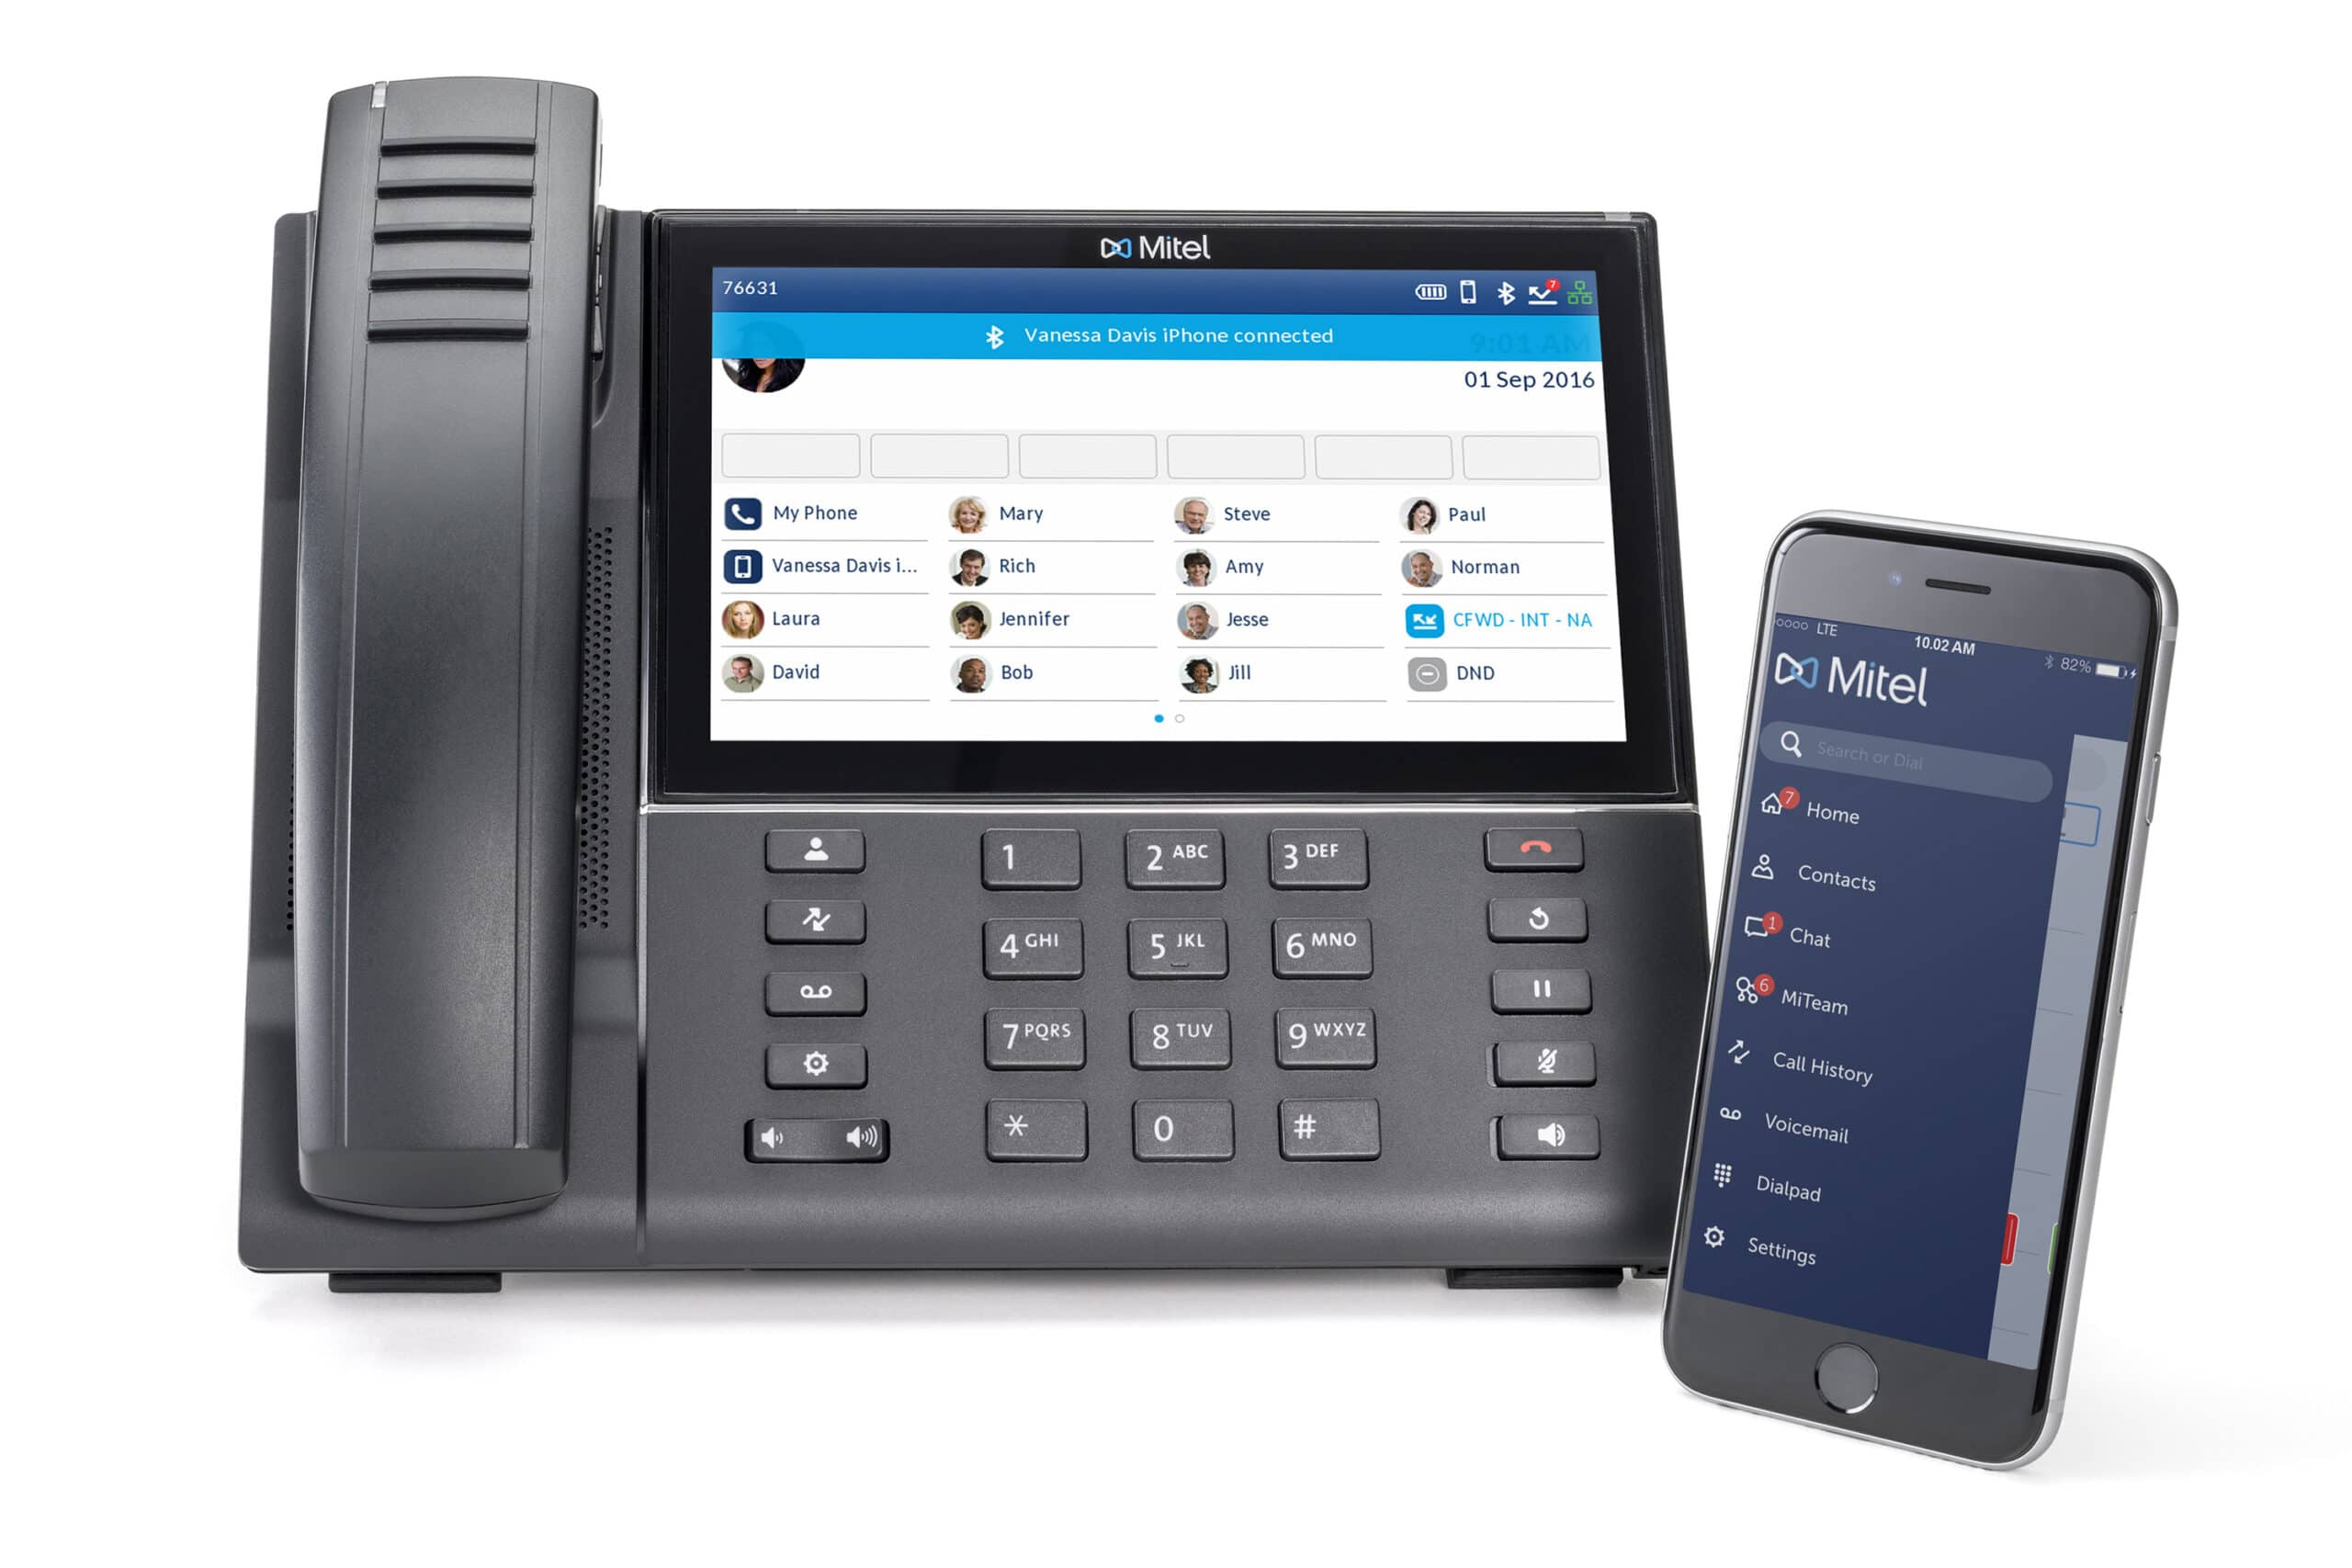 Mitel MiVoice Office 250